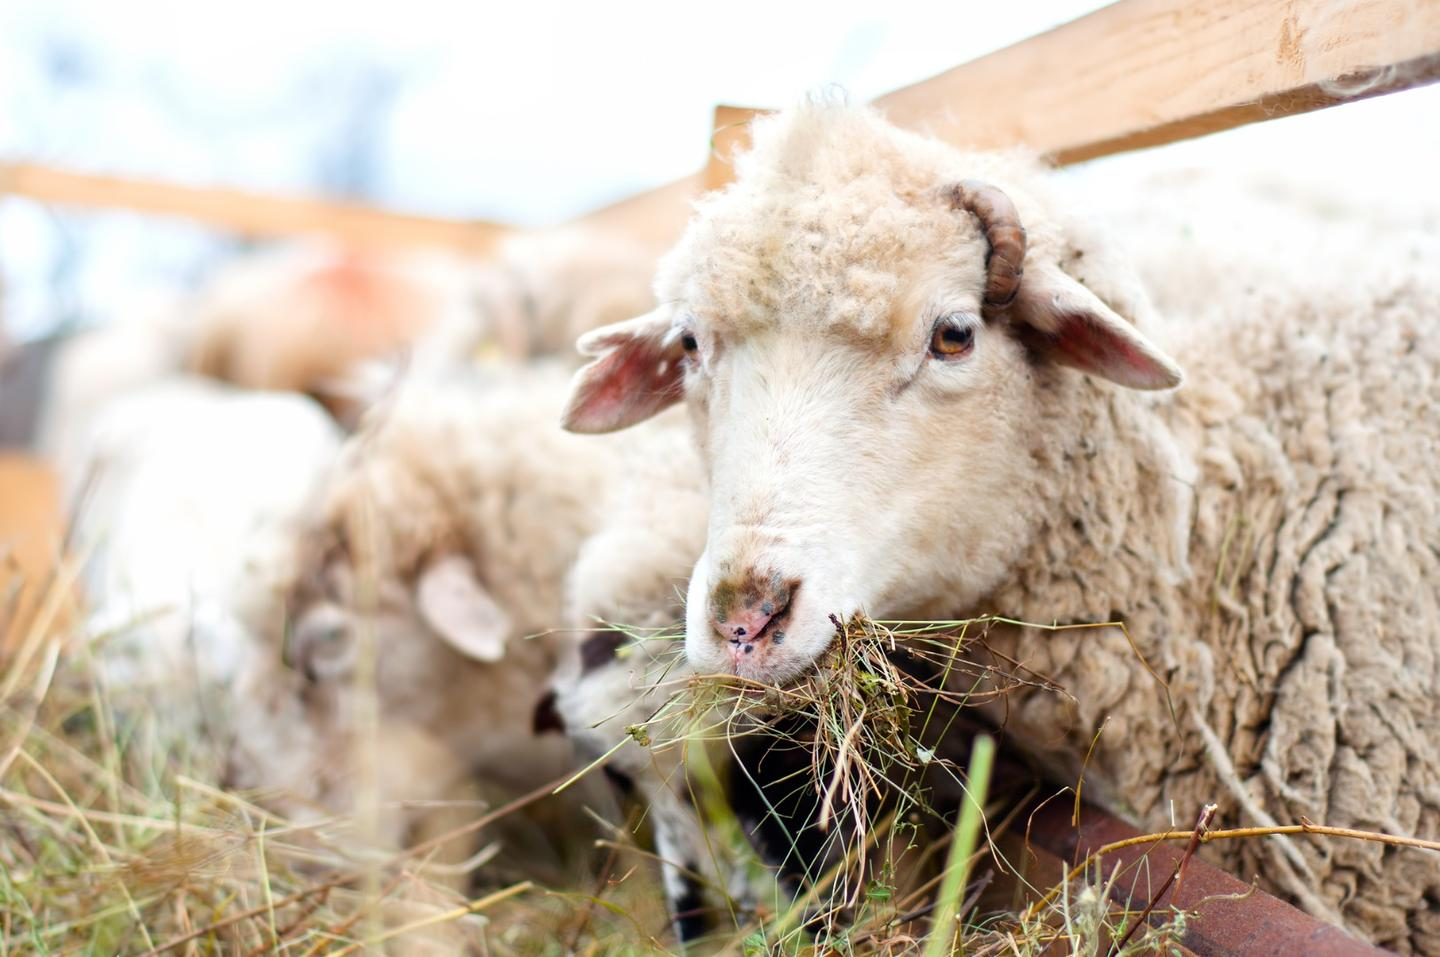 Researchers have investigated the gut microbes of sheep to find ways to reduce agricultural methane emissions